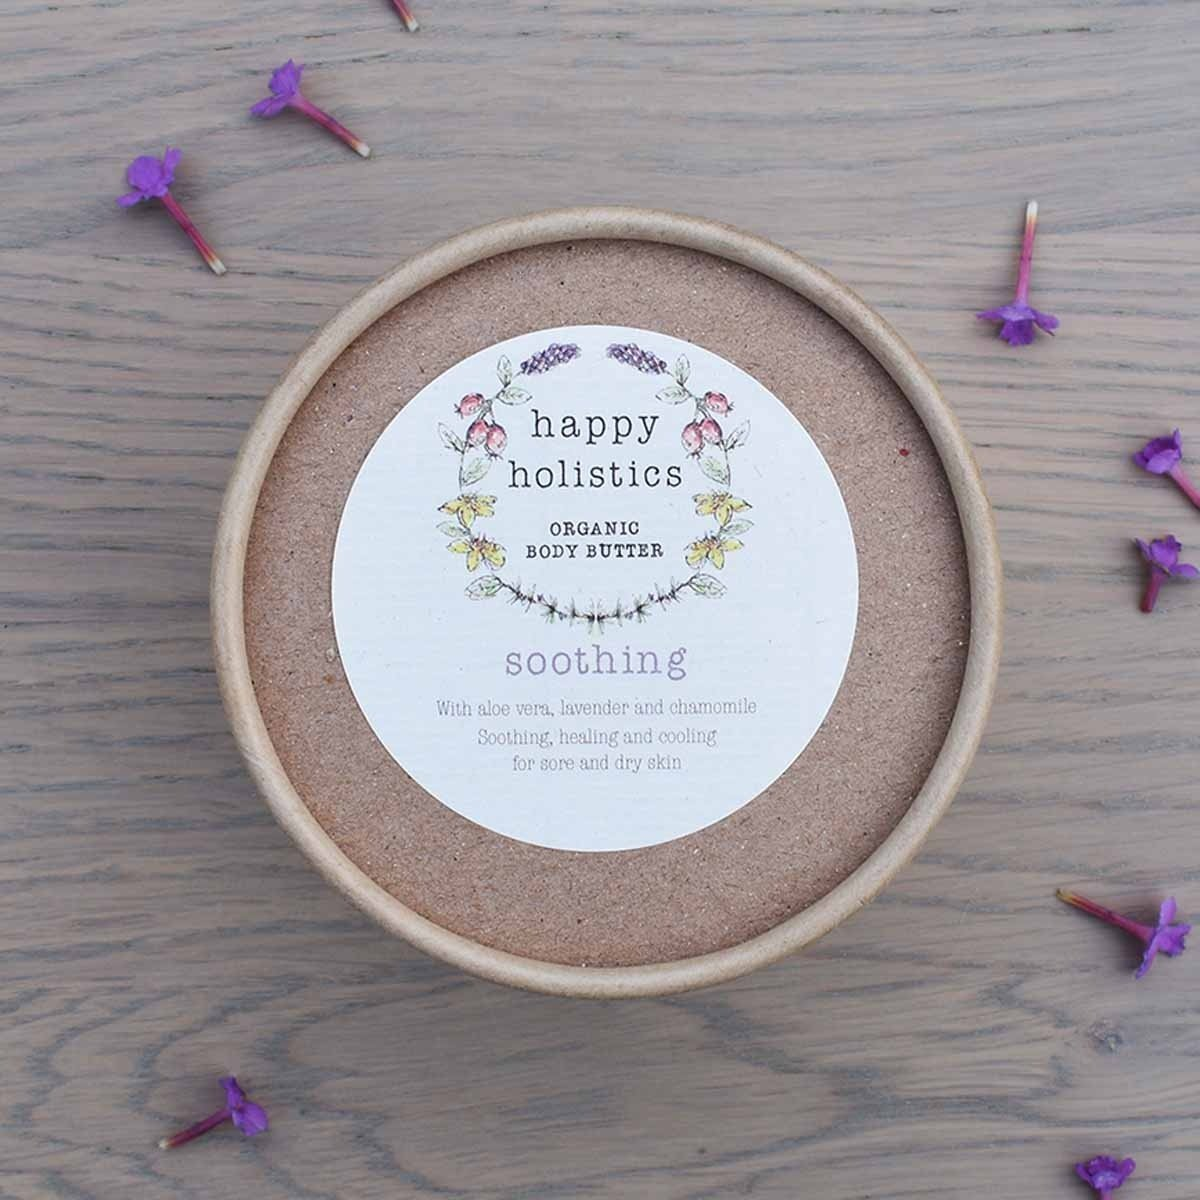 organic body butter soothing happy holistics 200g 1